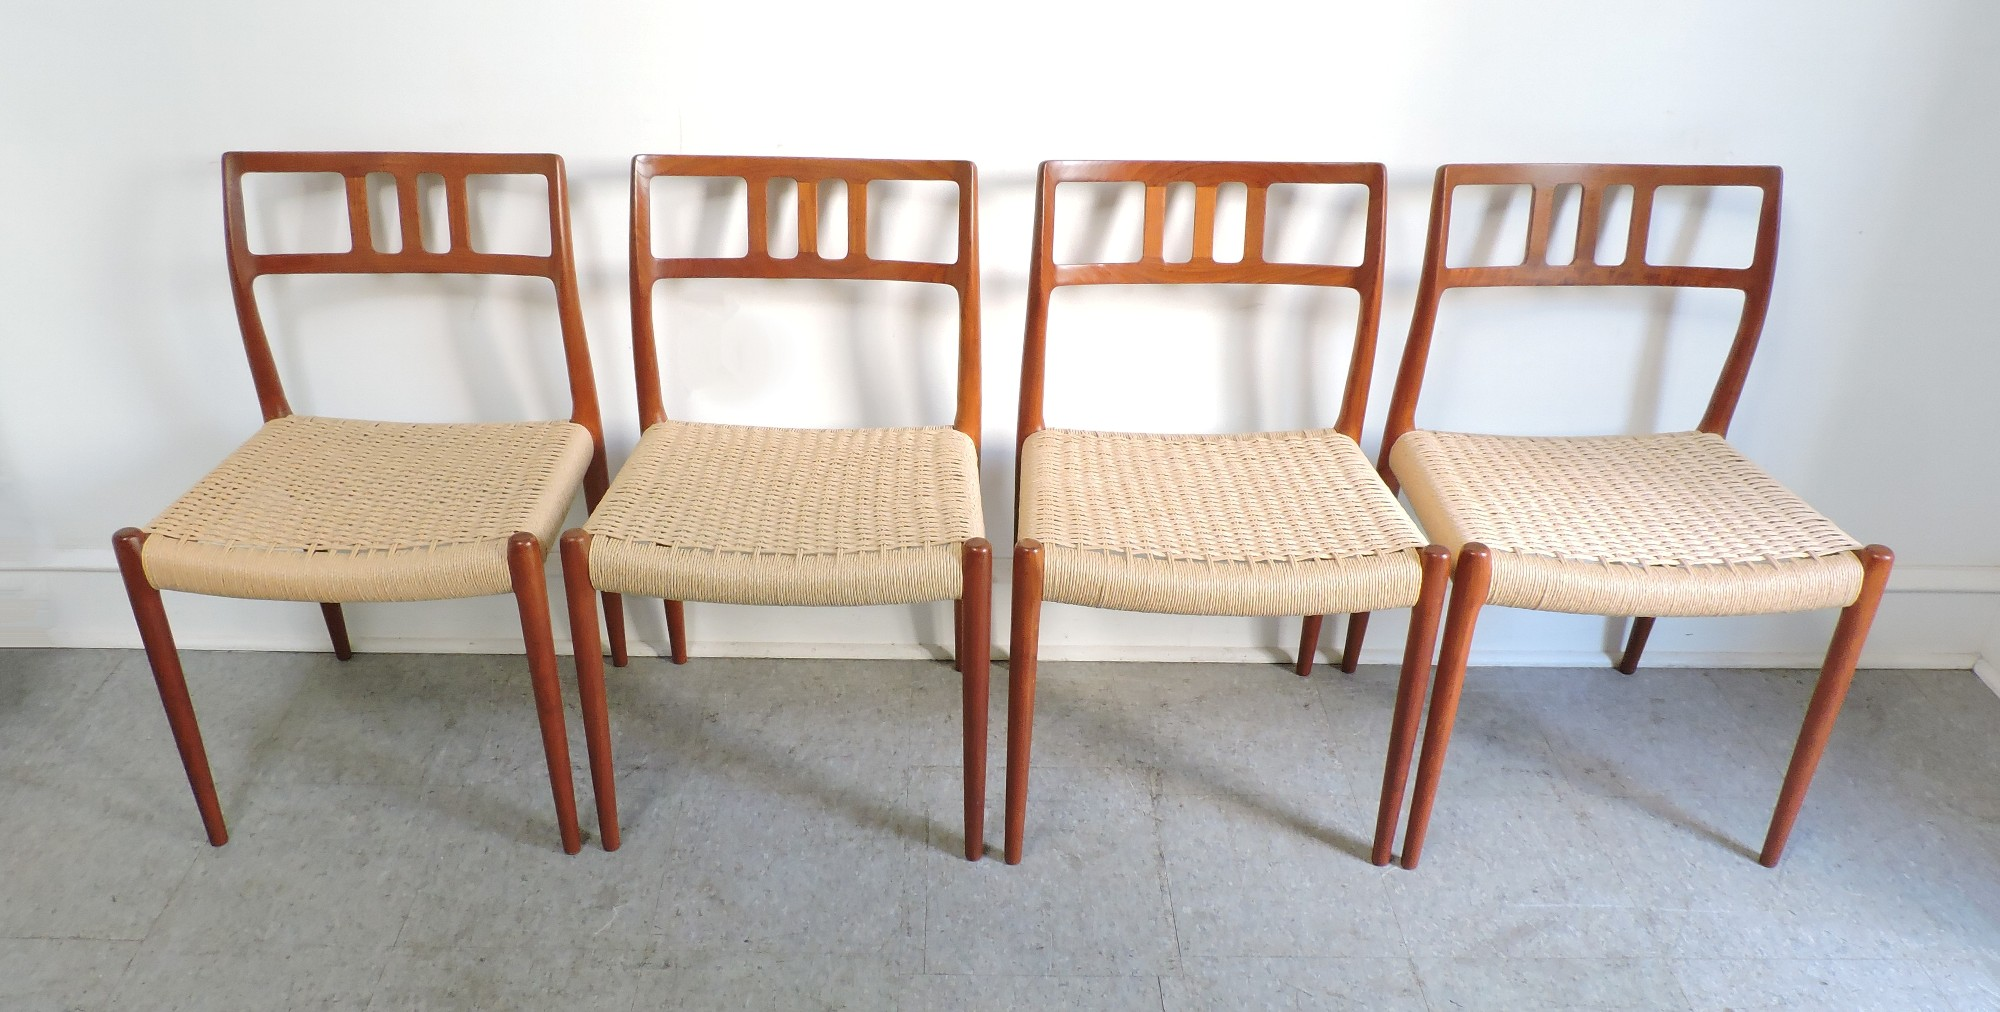 Danish Modern Dining Chairs For Sale Set Of 4 Danish Modern Niels Moller Teak Dining Chairs 79 For